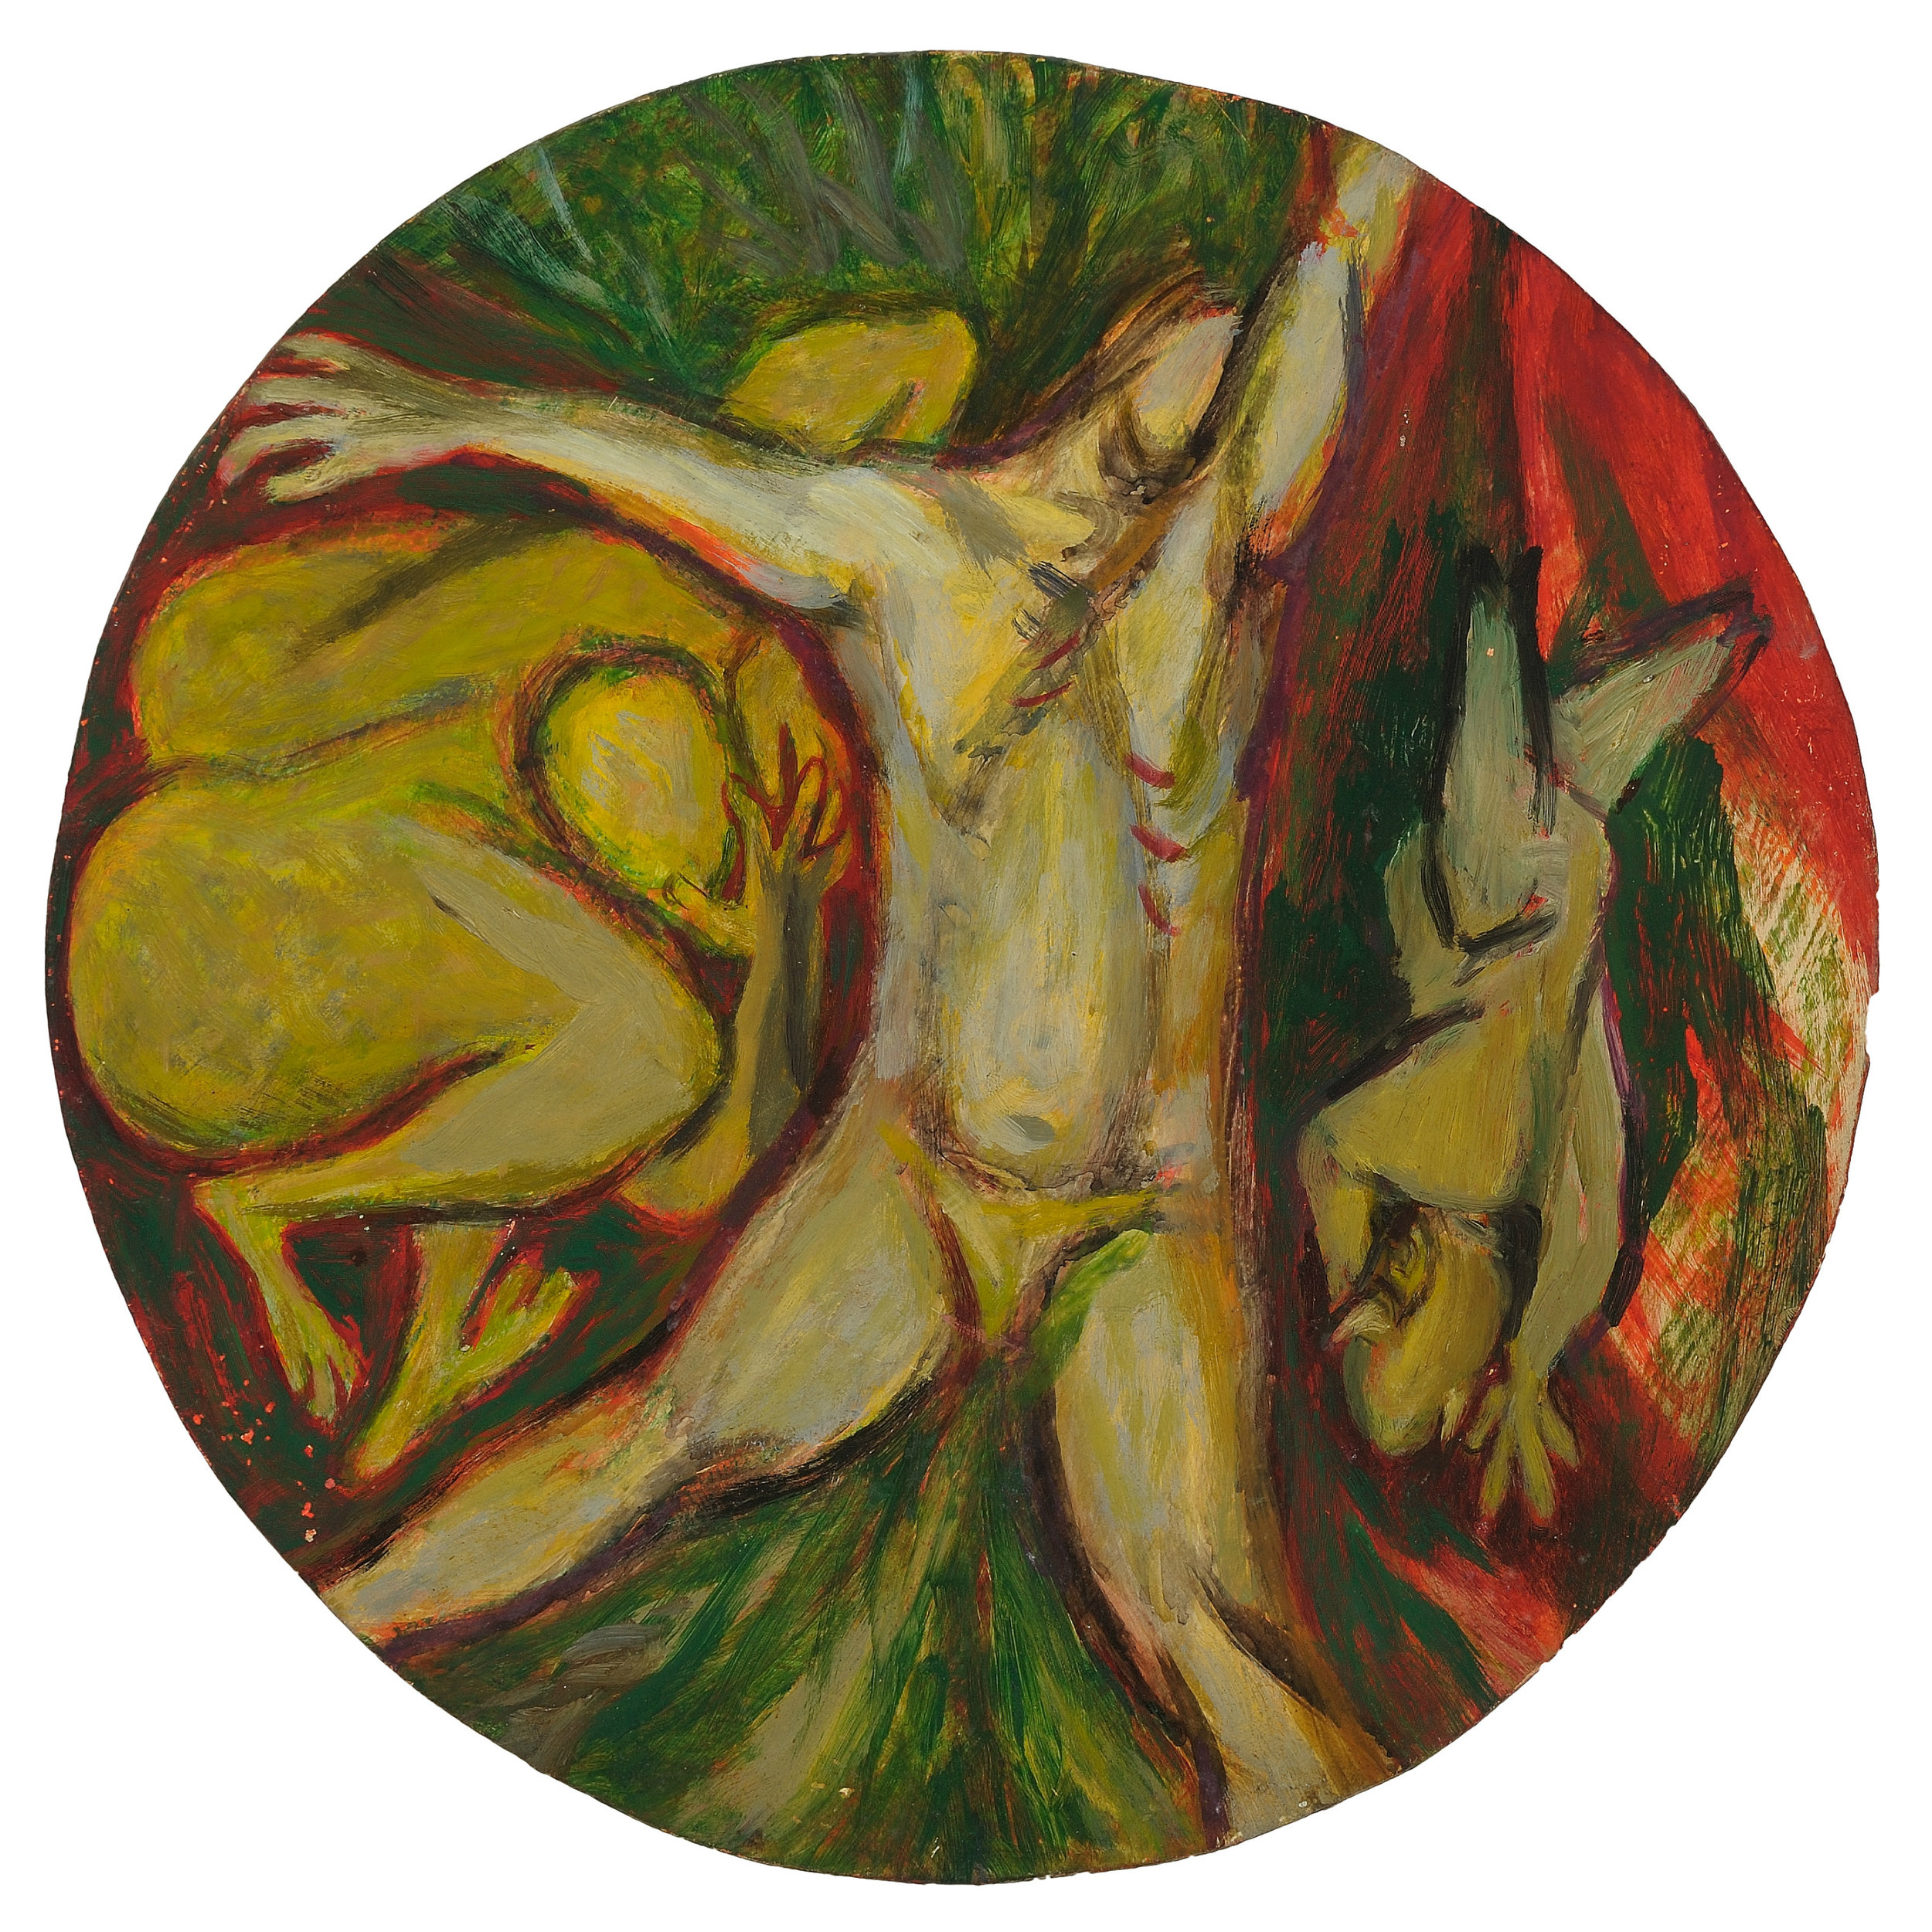 Irving Kriesberg,  Profane Love or The Fall of Man , 1946, oil on Masonite. Collection of the Estate of Irving Kriesberg